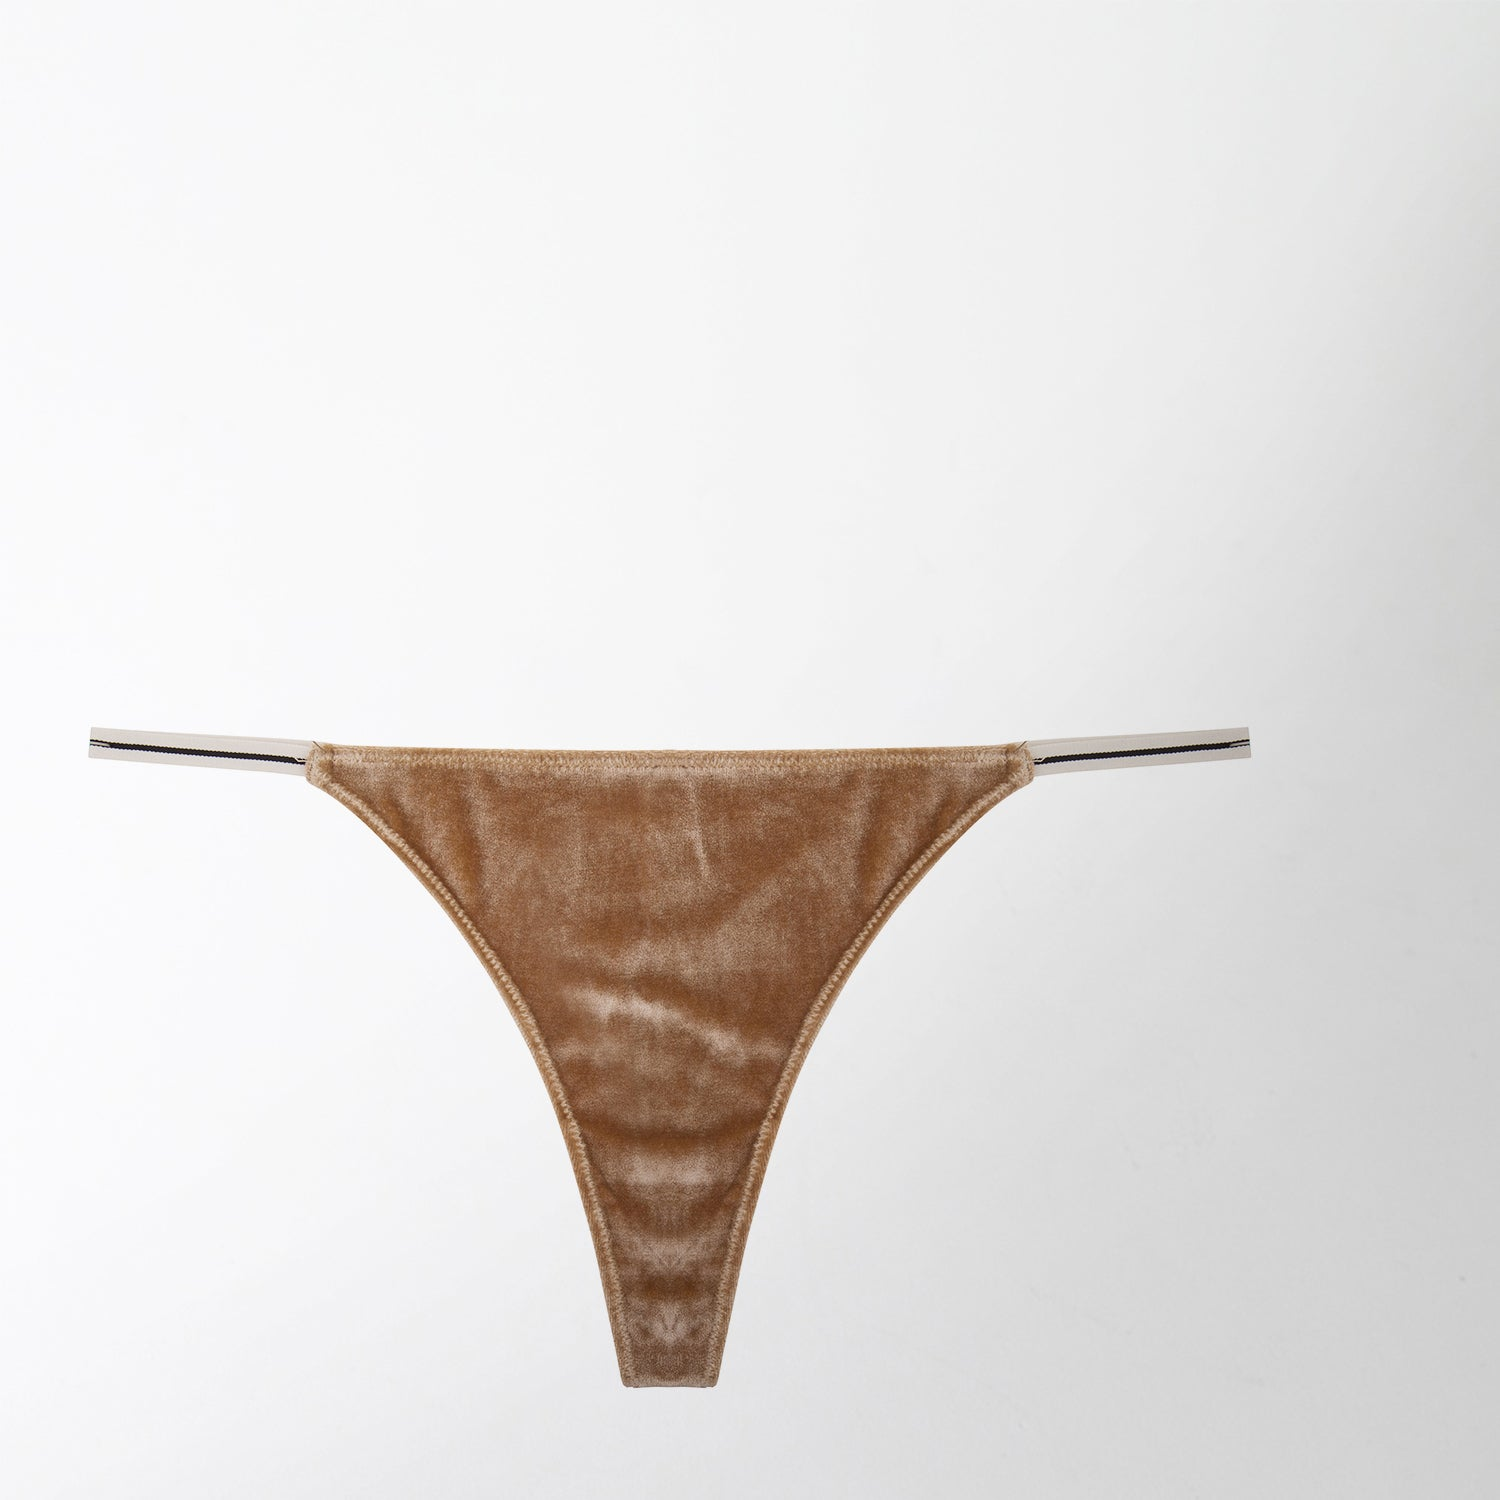 velvet and lace beige thong by Love Stories Intimates at Secret Location Concept Store